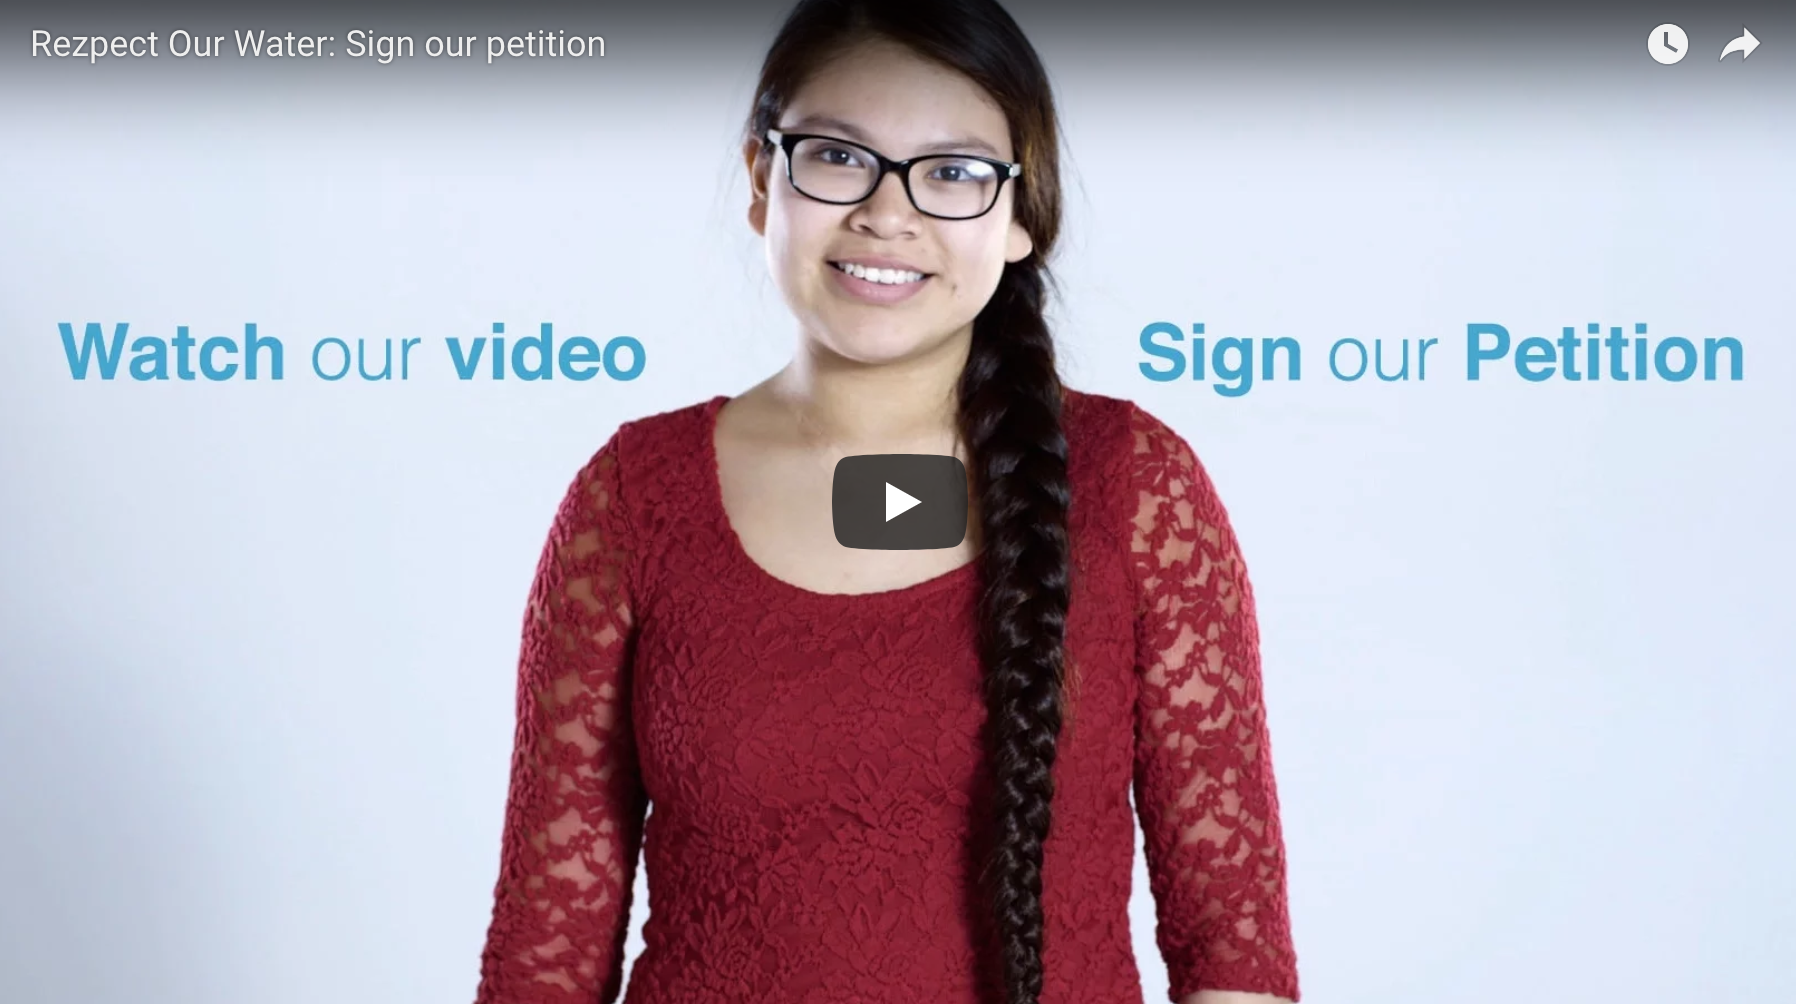 director - I had the opportunity of working of .working with the standing rock sioux tribe as a campaign producer. In addition to running their awareness campaign, I directed all the campaign videos